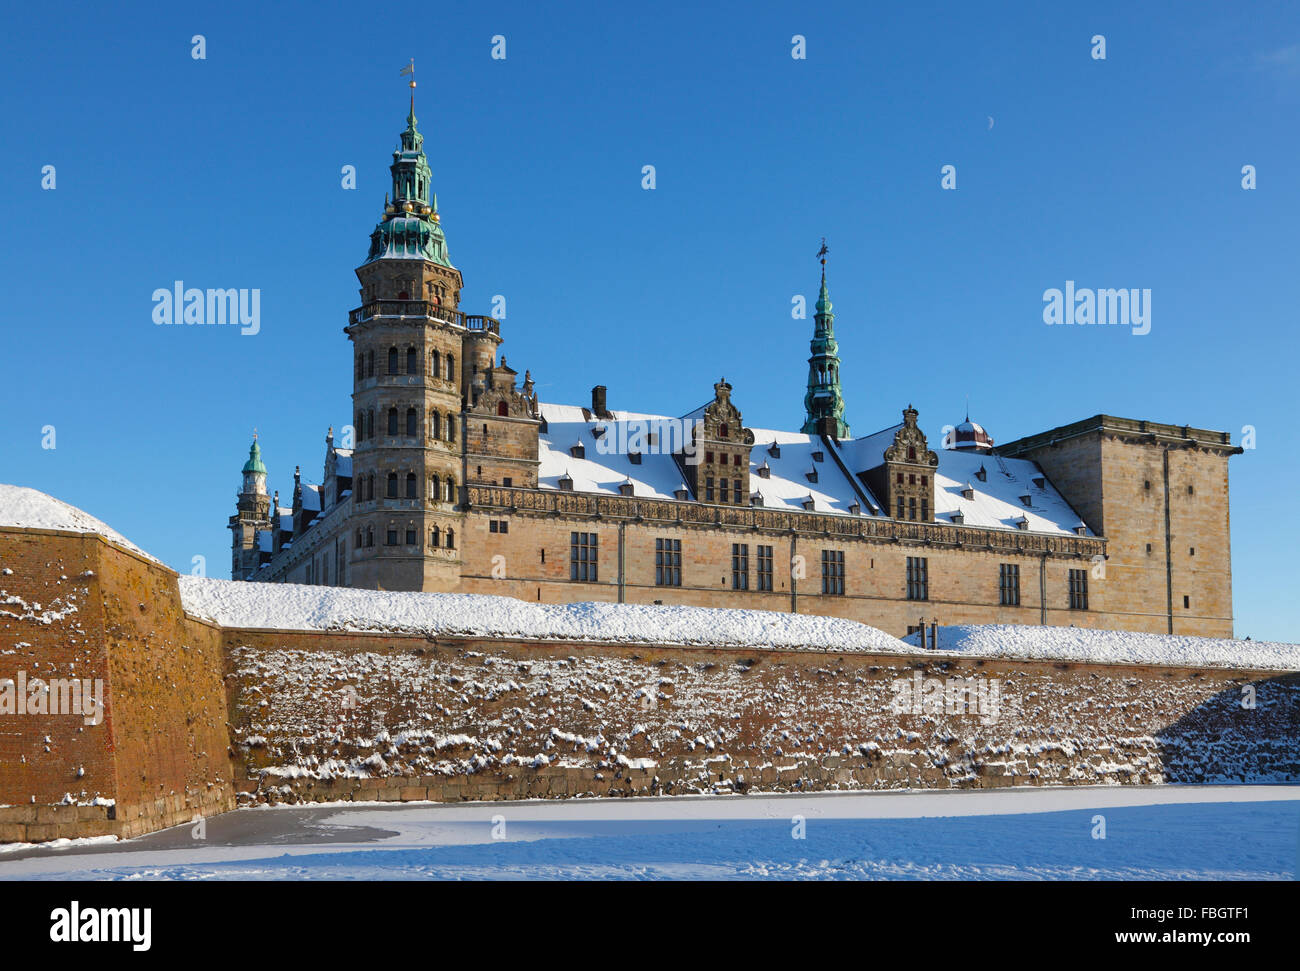 The snow-covered Kronborg Castle in Elsinore, Helsingør, on a sunny winter's day, frozen moat and a blue - Stock Image